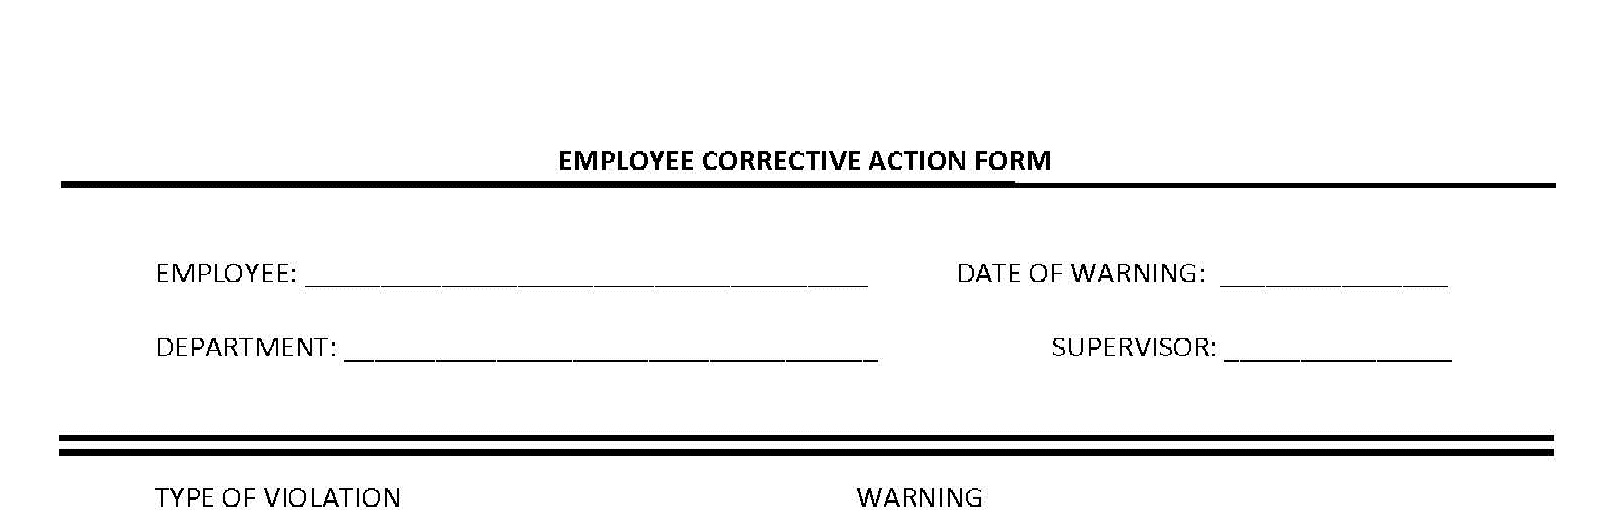 disciplinary write up form